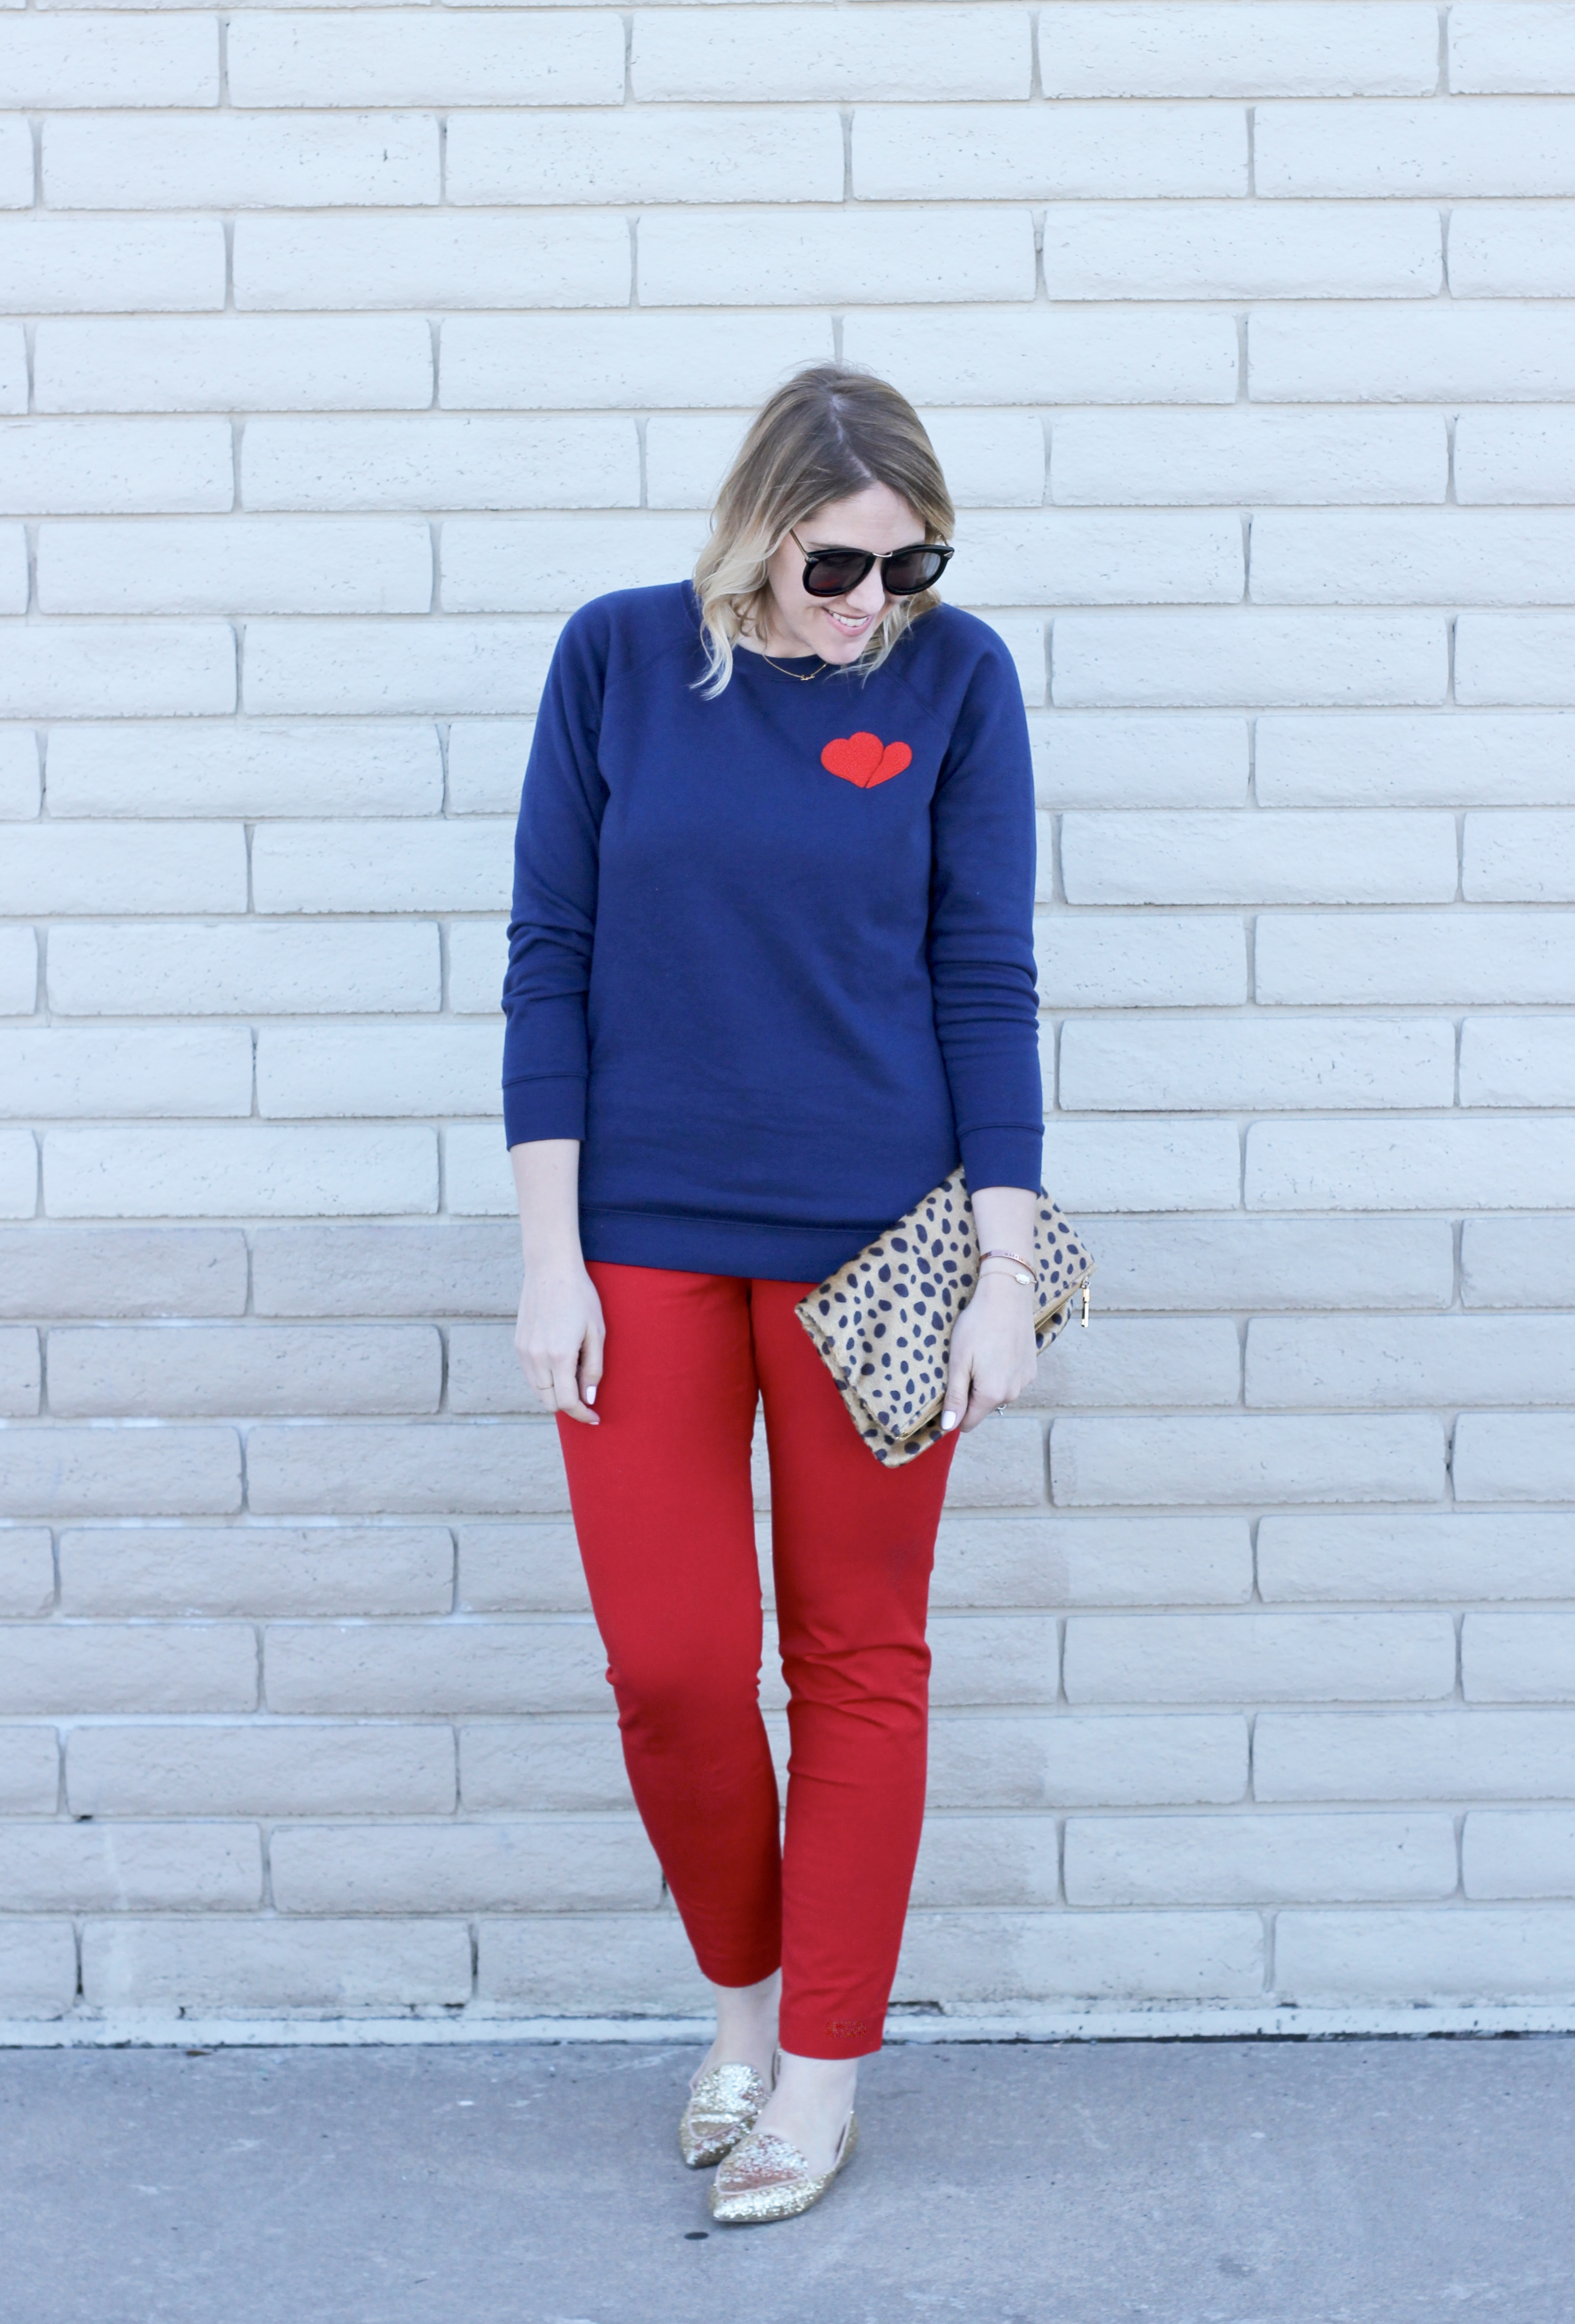 valentines day outfit #valentinesday #valentinesoutfit